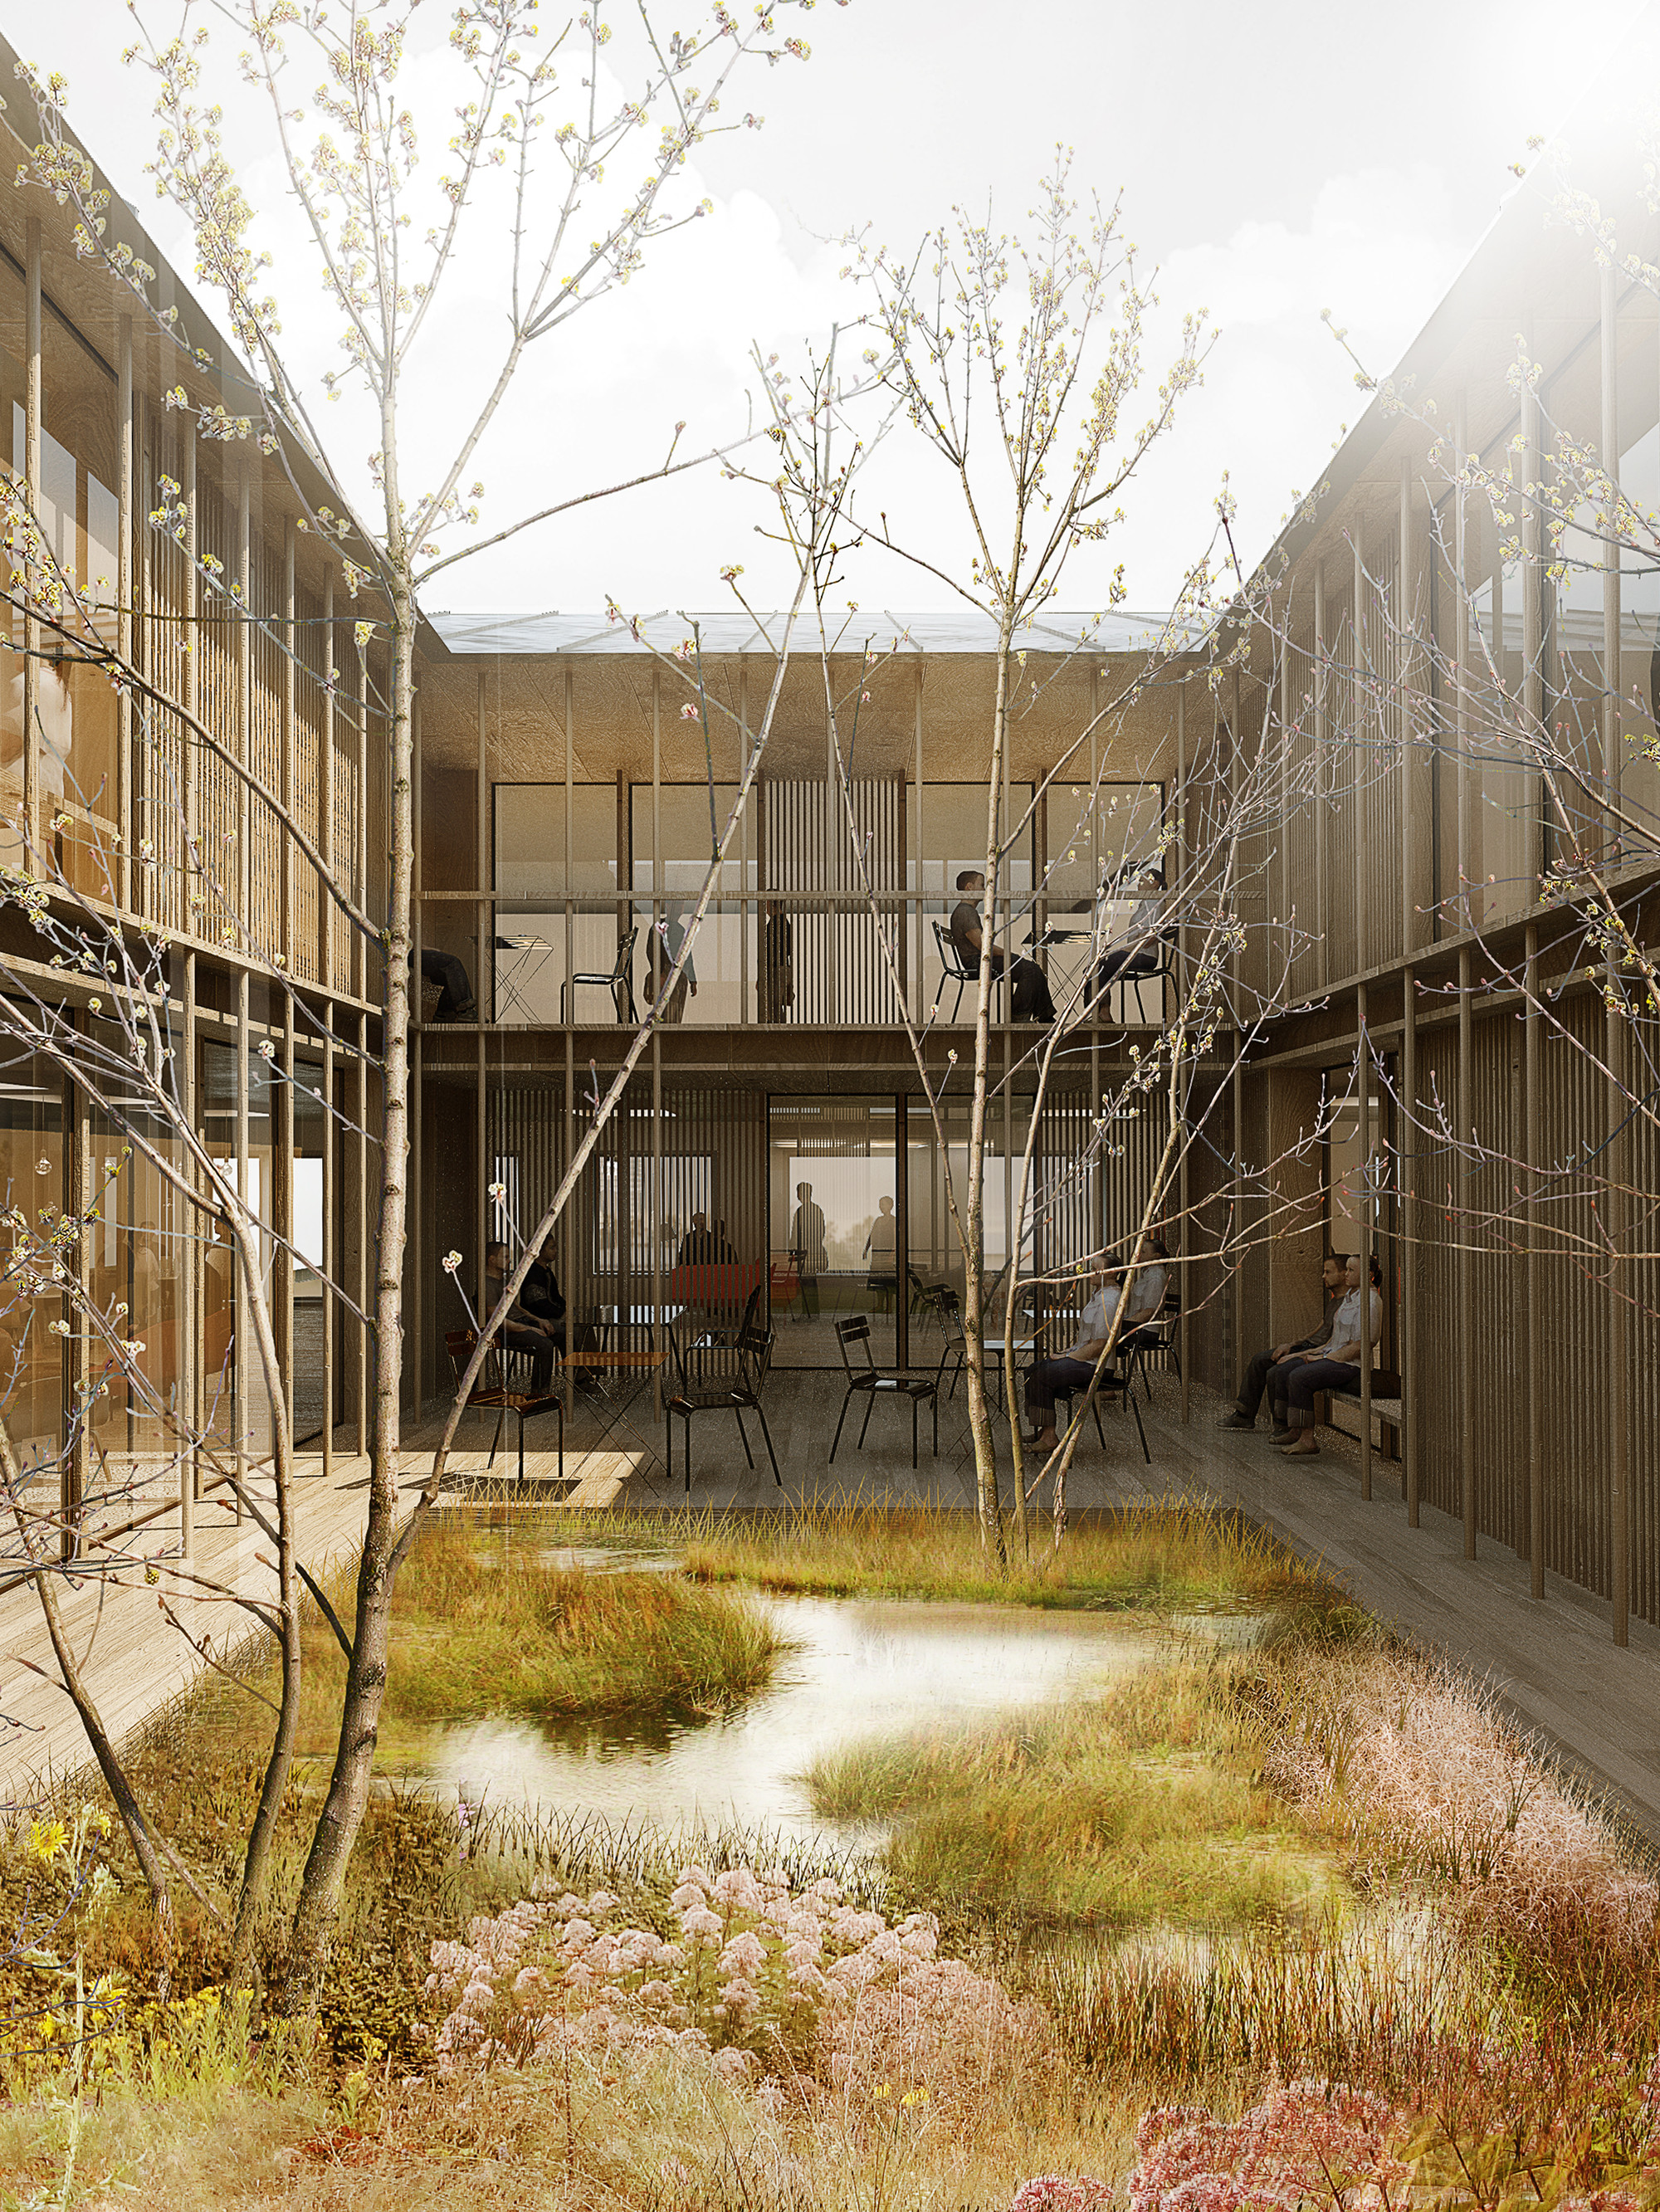 ce project hospital building essay The hospital project healing is to be a loving human interchange not a business transaction if care and compassion are to be the core of a health care system, then 'hospital'—as concept, physical structure, symbol and site of the medical system in its largest possible scale—needs to be reframed and reclaimed.